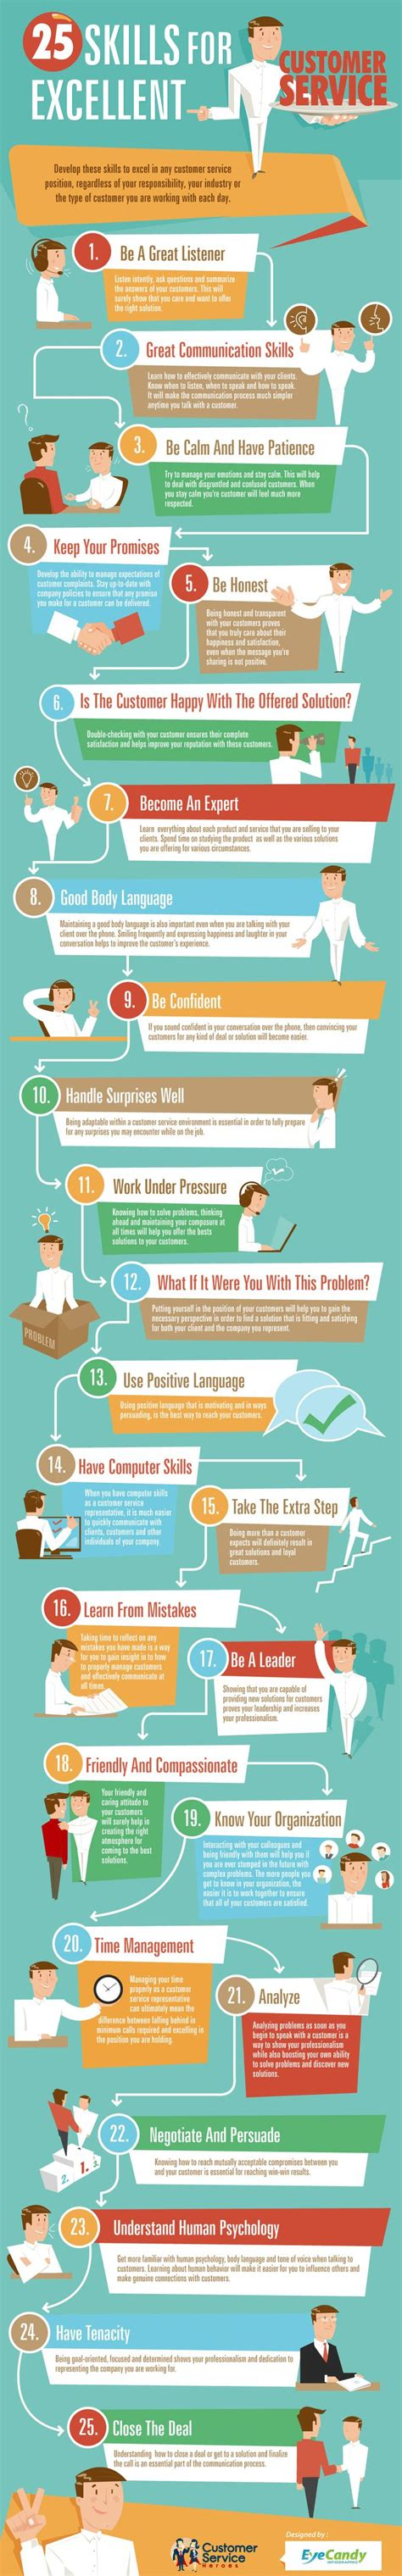 Infographic 25 Skills For Excellent Customer Service